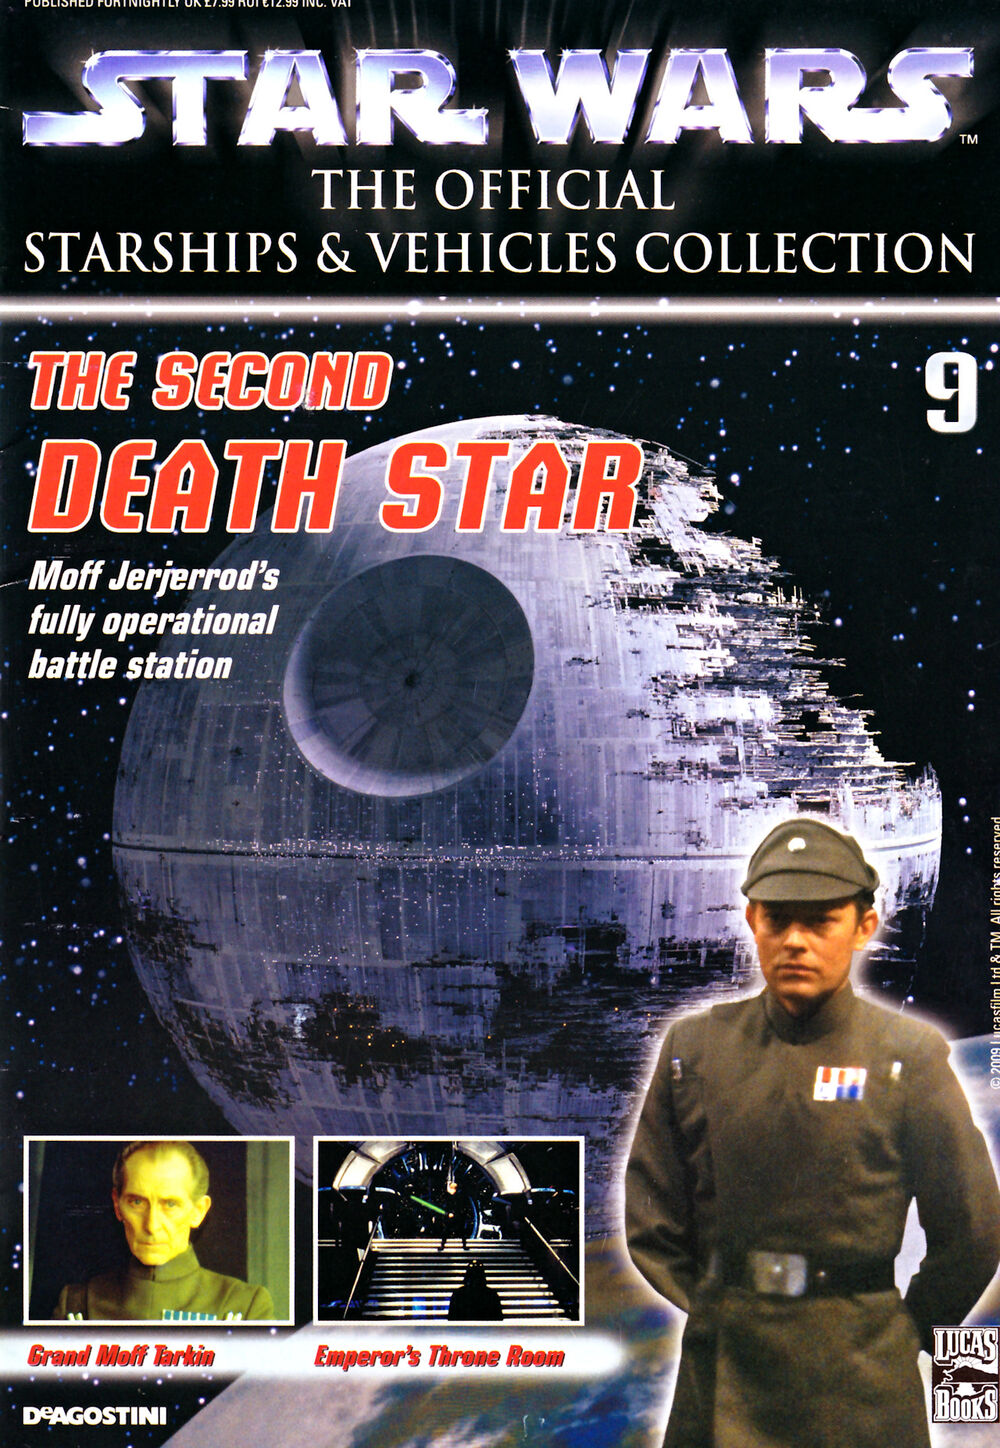 Star Wars: The Official Starships and Vehicles Collection 9 - The Second Death Star